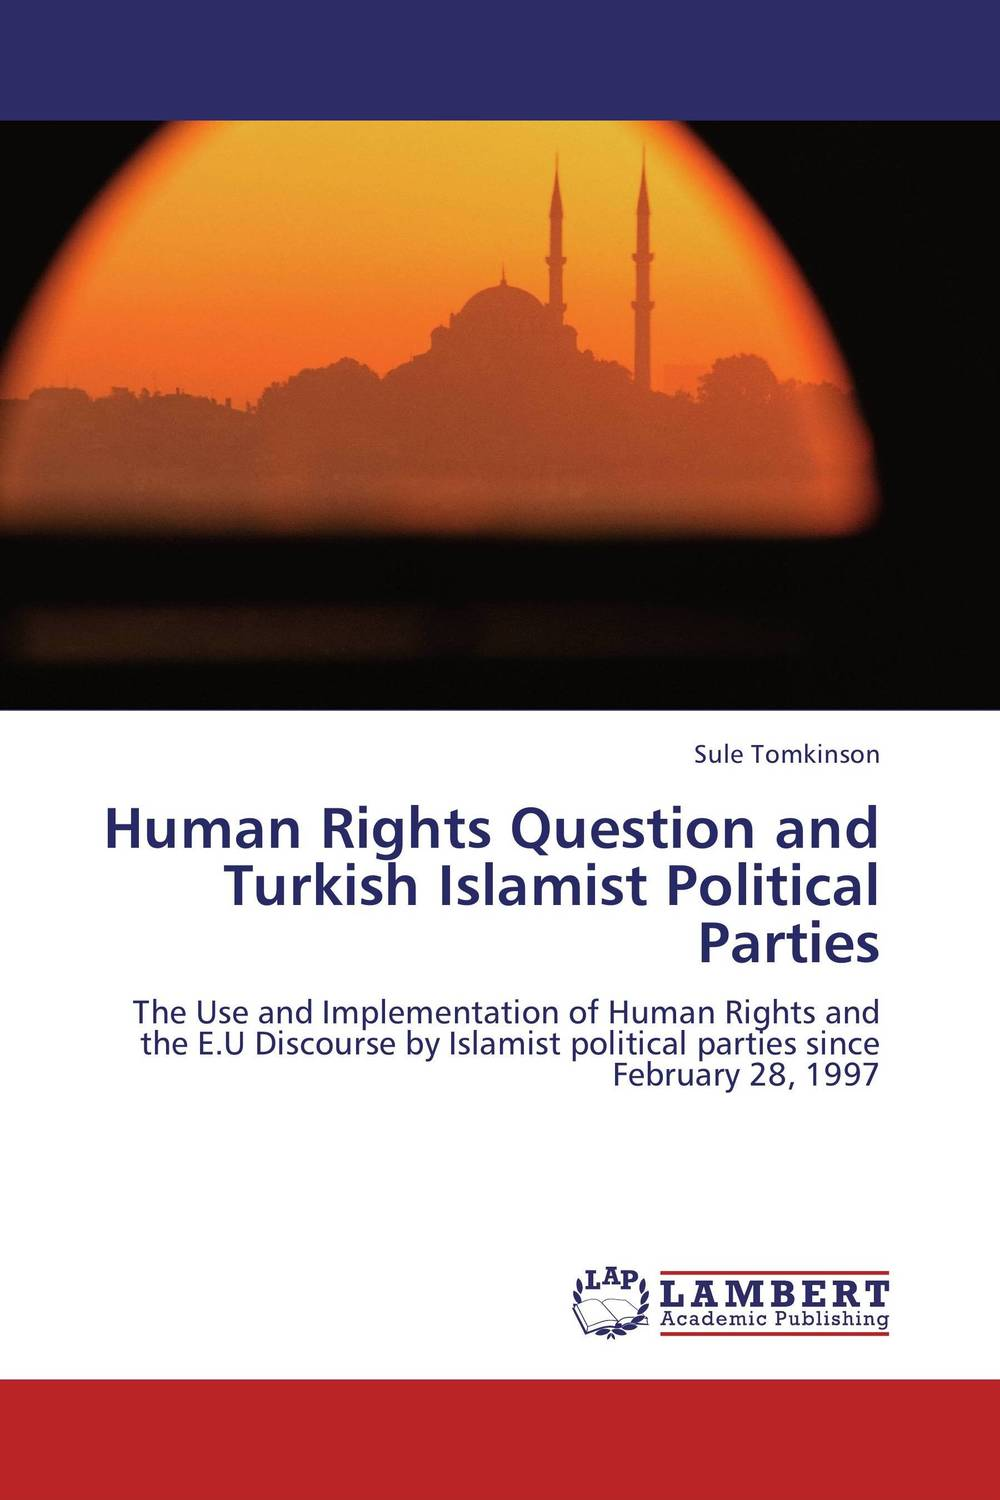 Human Rights Question and Turkish Islamist Political Parties brenner muslim identity